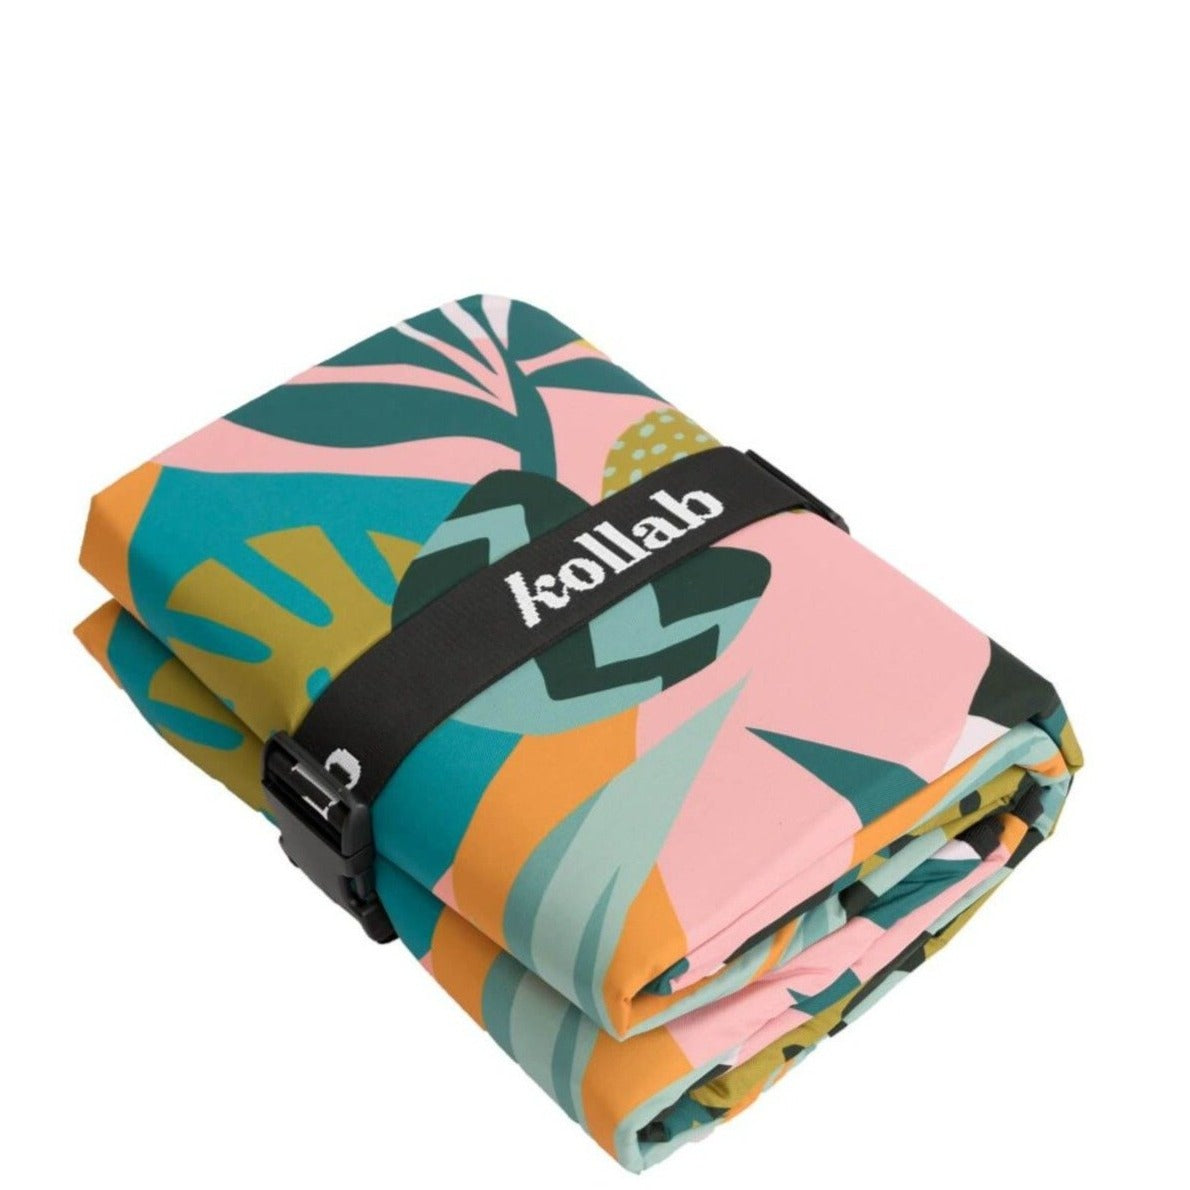 Kollab Monstera Cactus Picnic Mat |The Home Maven